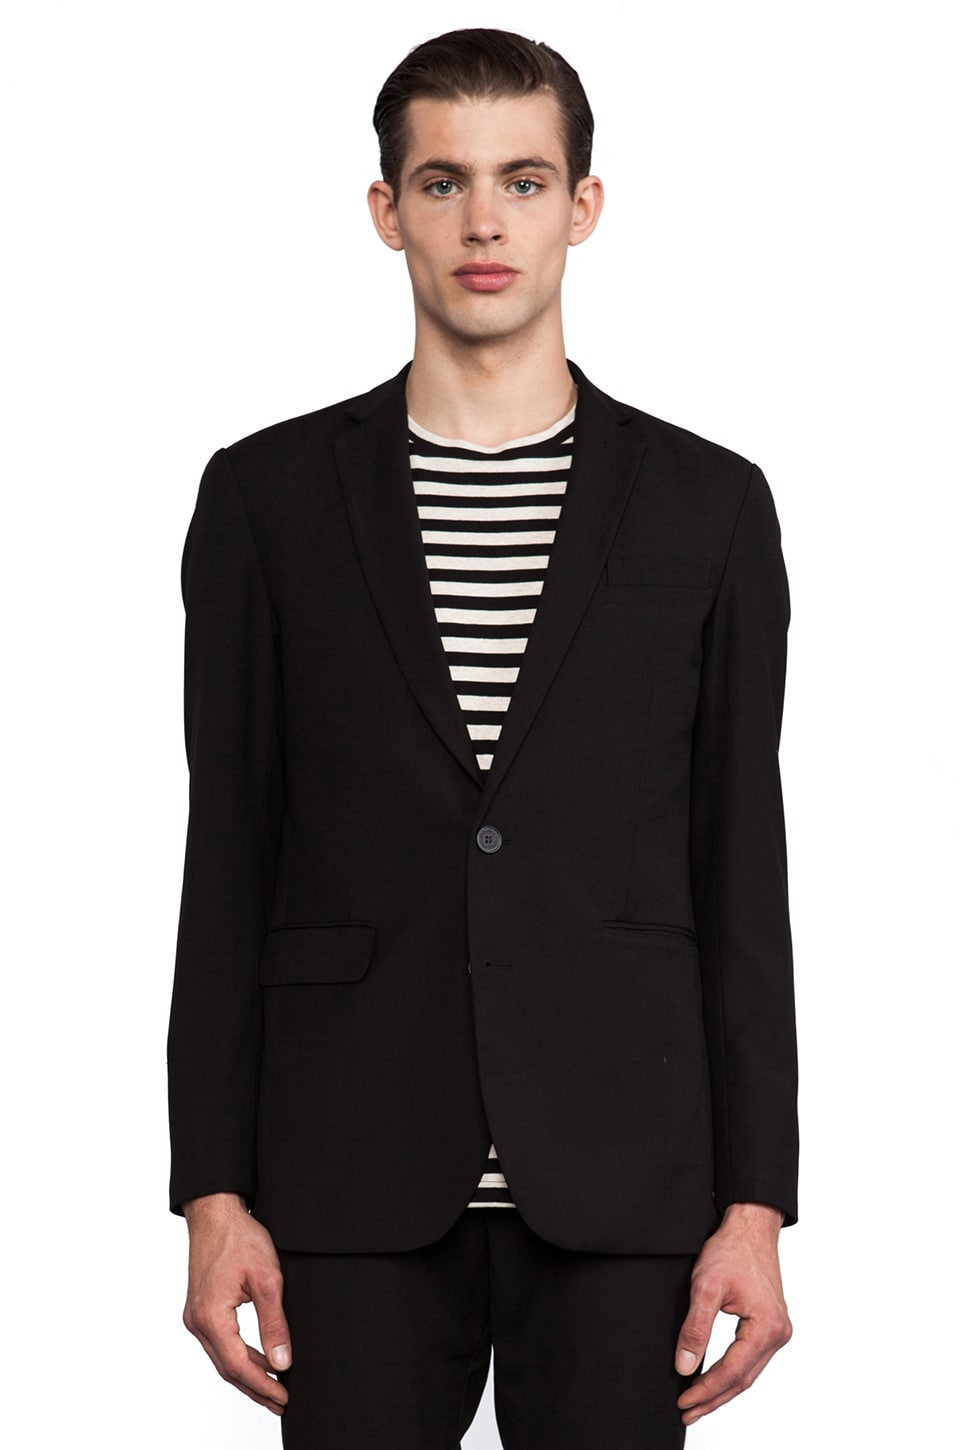 Shades of Grey by Micah Cohen 2 Button Blazer in Black Wool